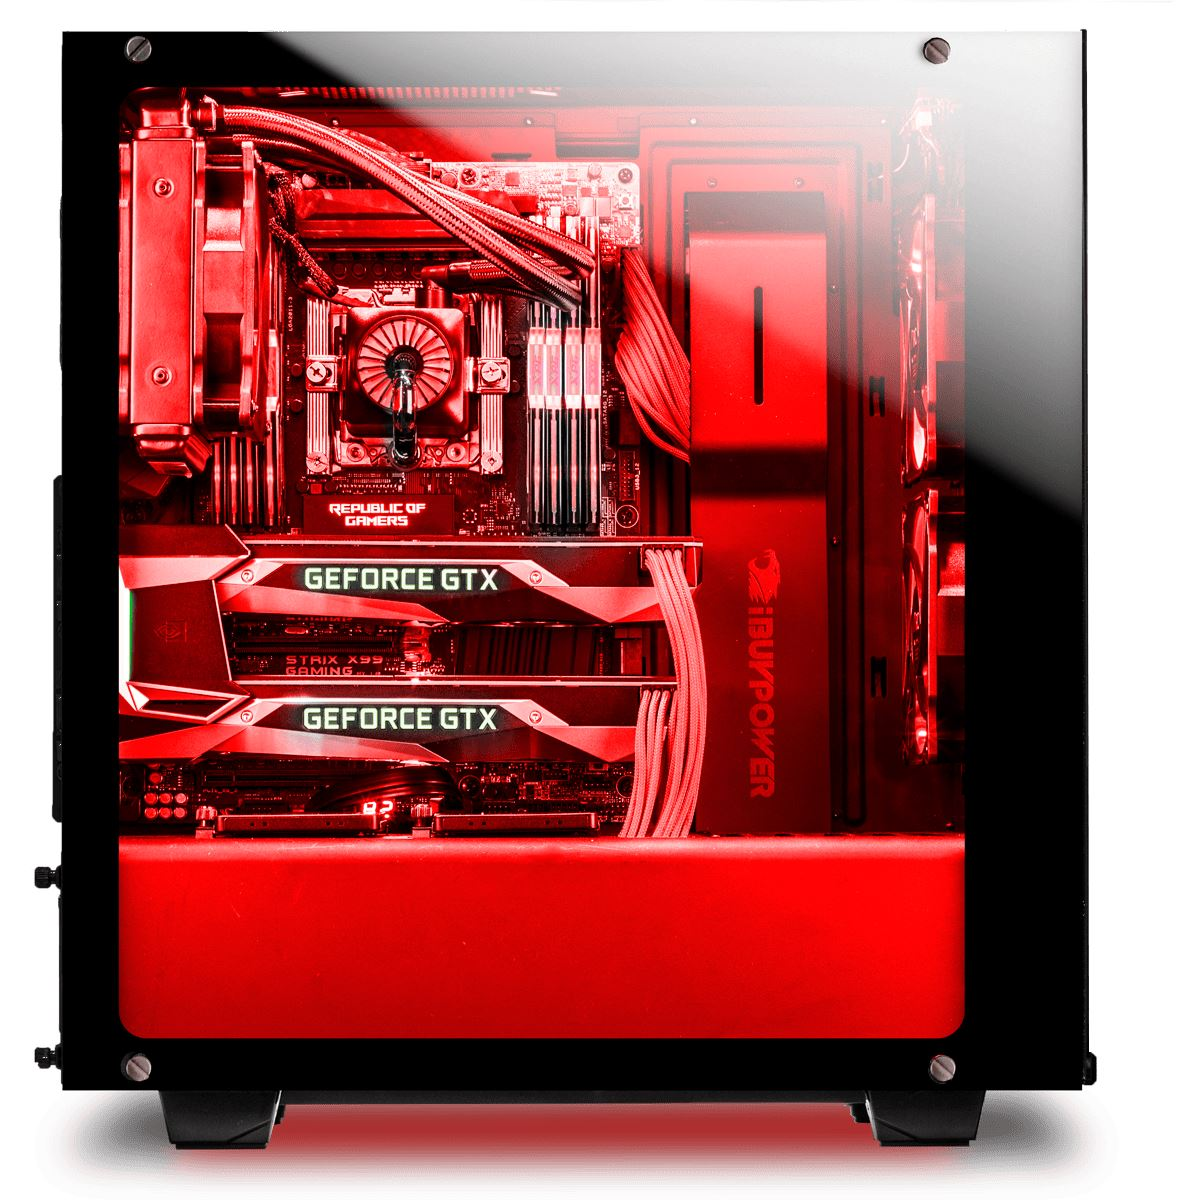 iBuyPower Element Gaming PC Review: i7-8086K and GTX 1080 Ti